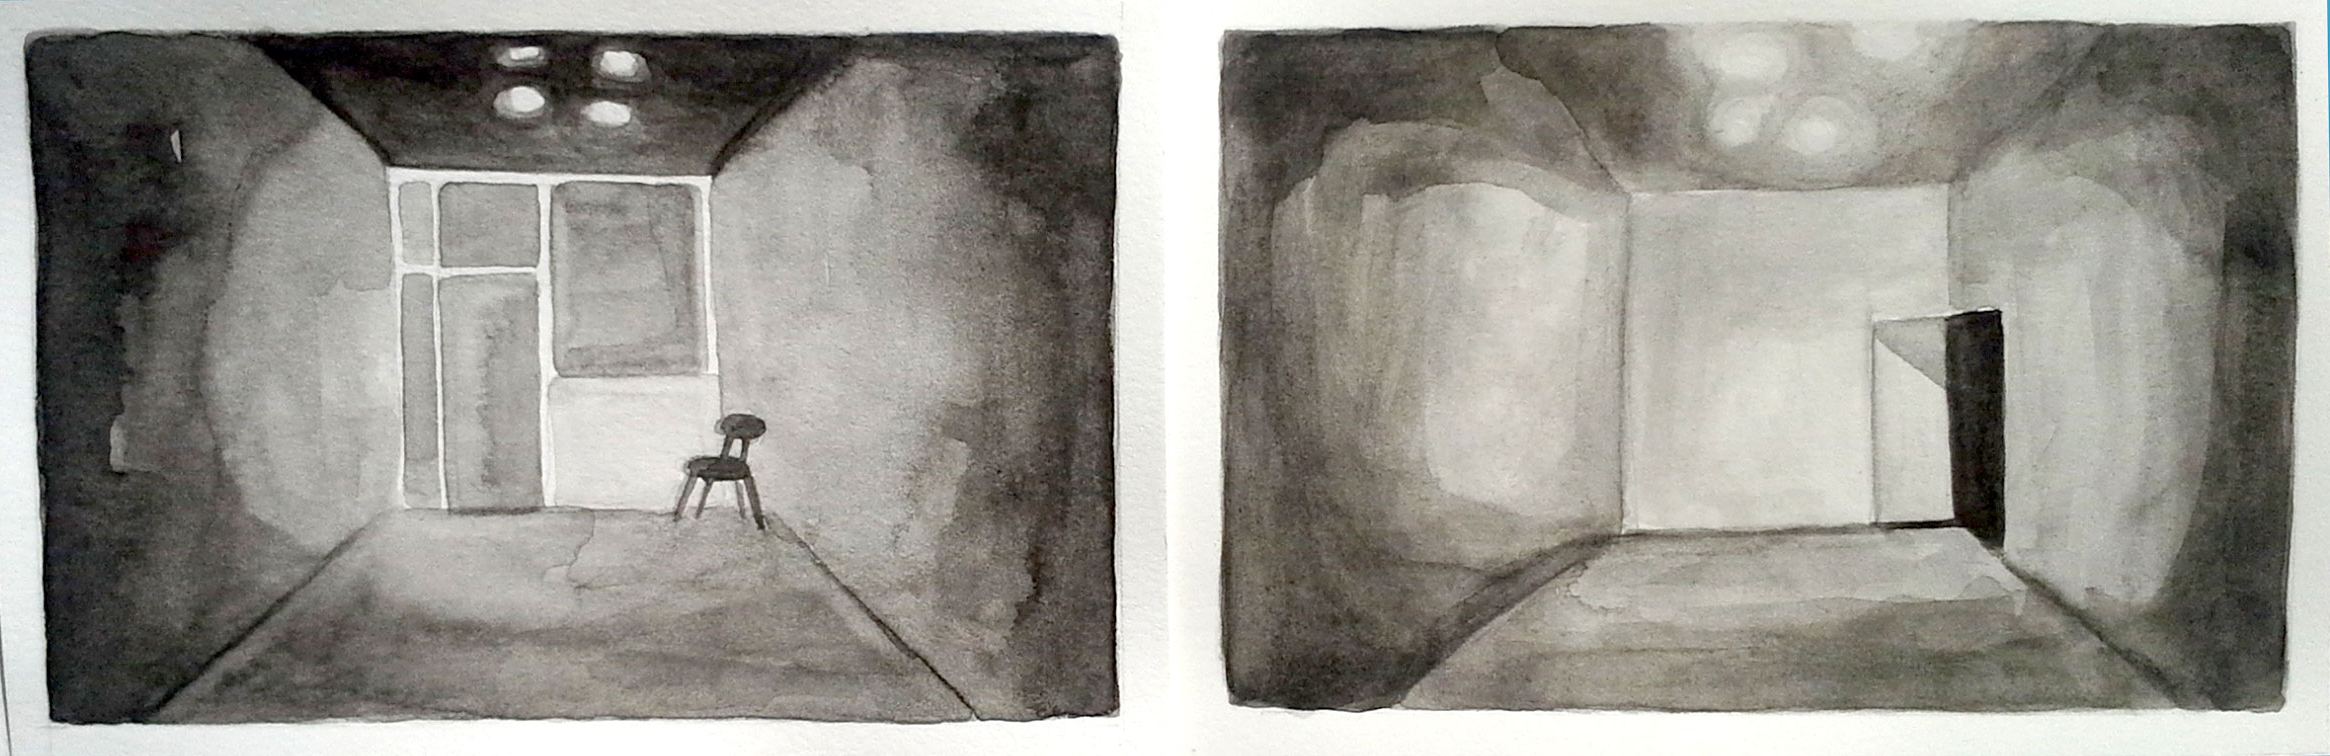 Gallery, Front & Back 5, 2013, 4 x 12 inches, watercolor on paper